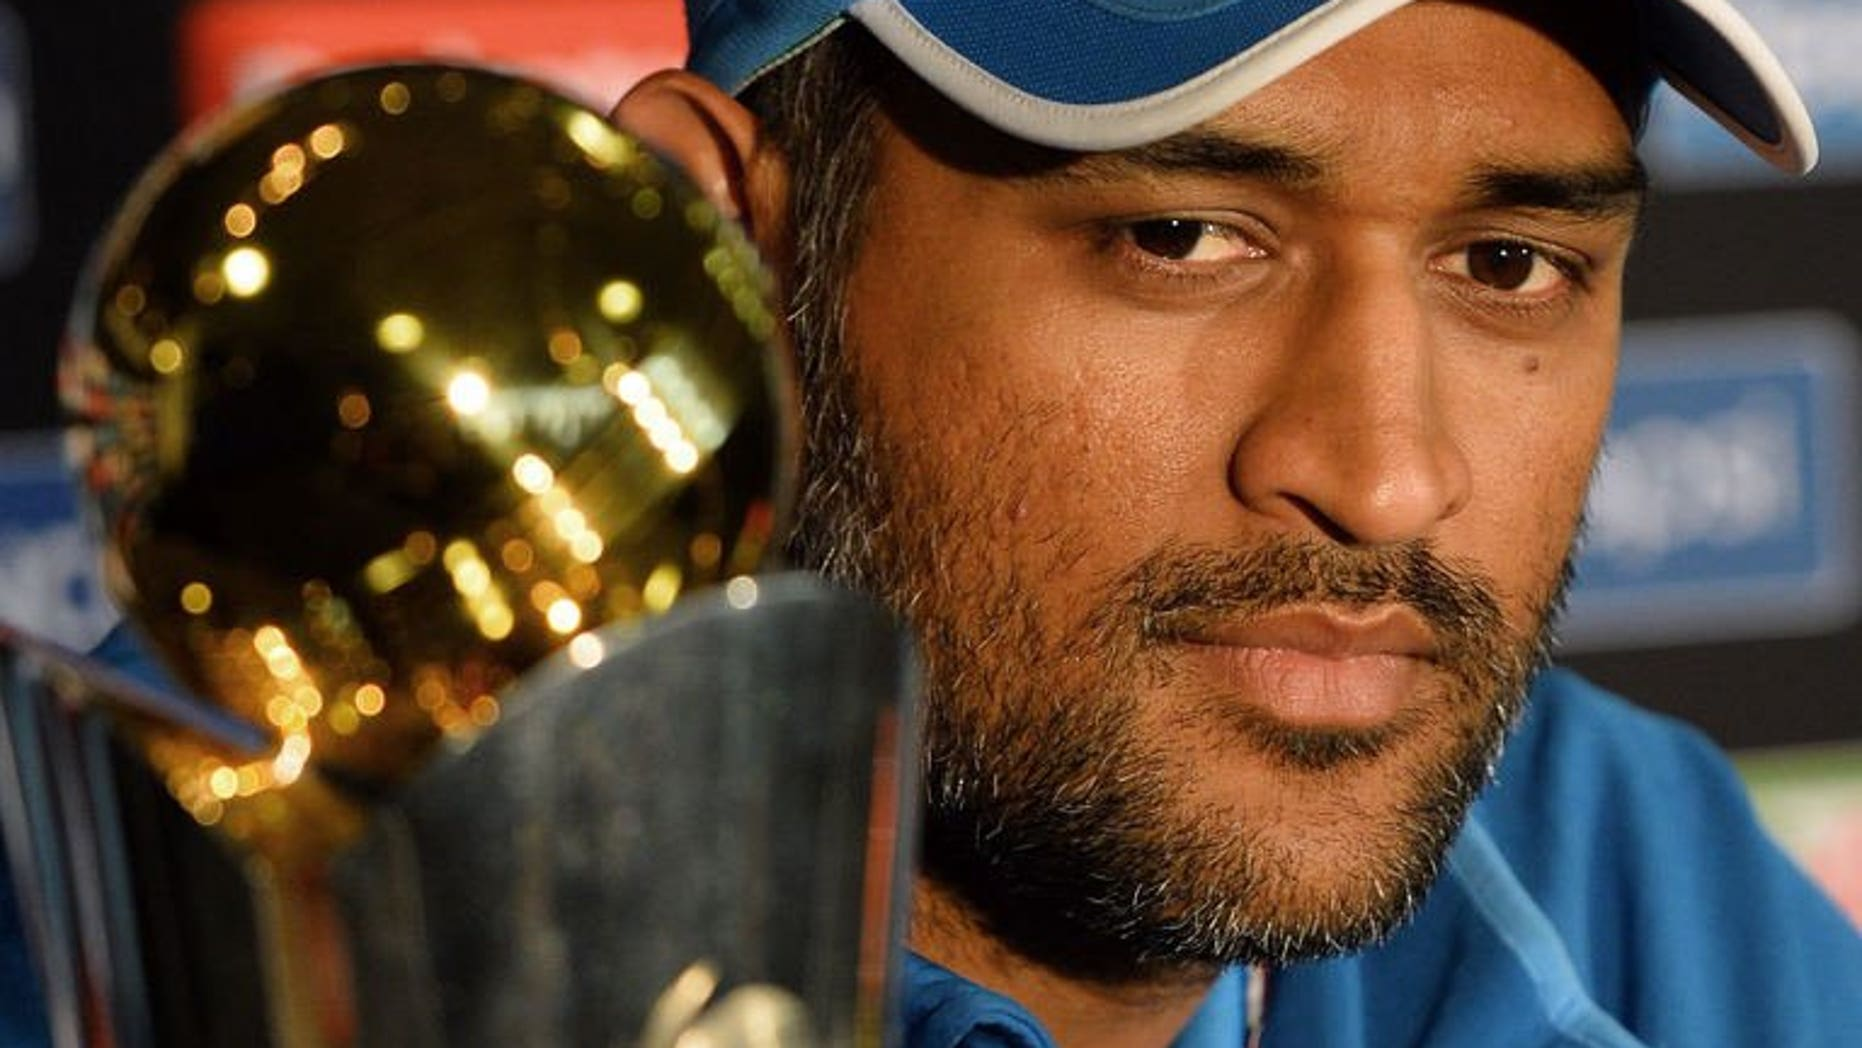 Indian cricket captain Mahendra Singh Dhoni addresses a news conference in Birmingham on June 22, 2013, a day ahead of the Champions Trophy match against England. Dhoni hopes the keen tussle between his young team and hosts England will produce an exciting final.